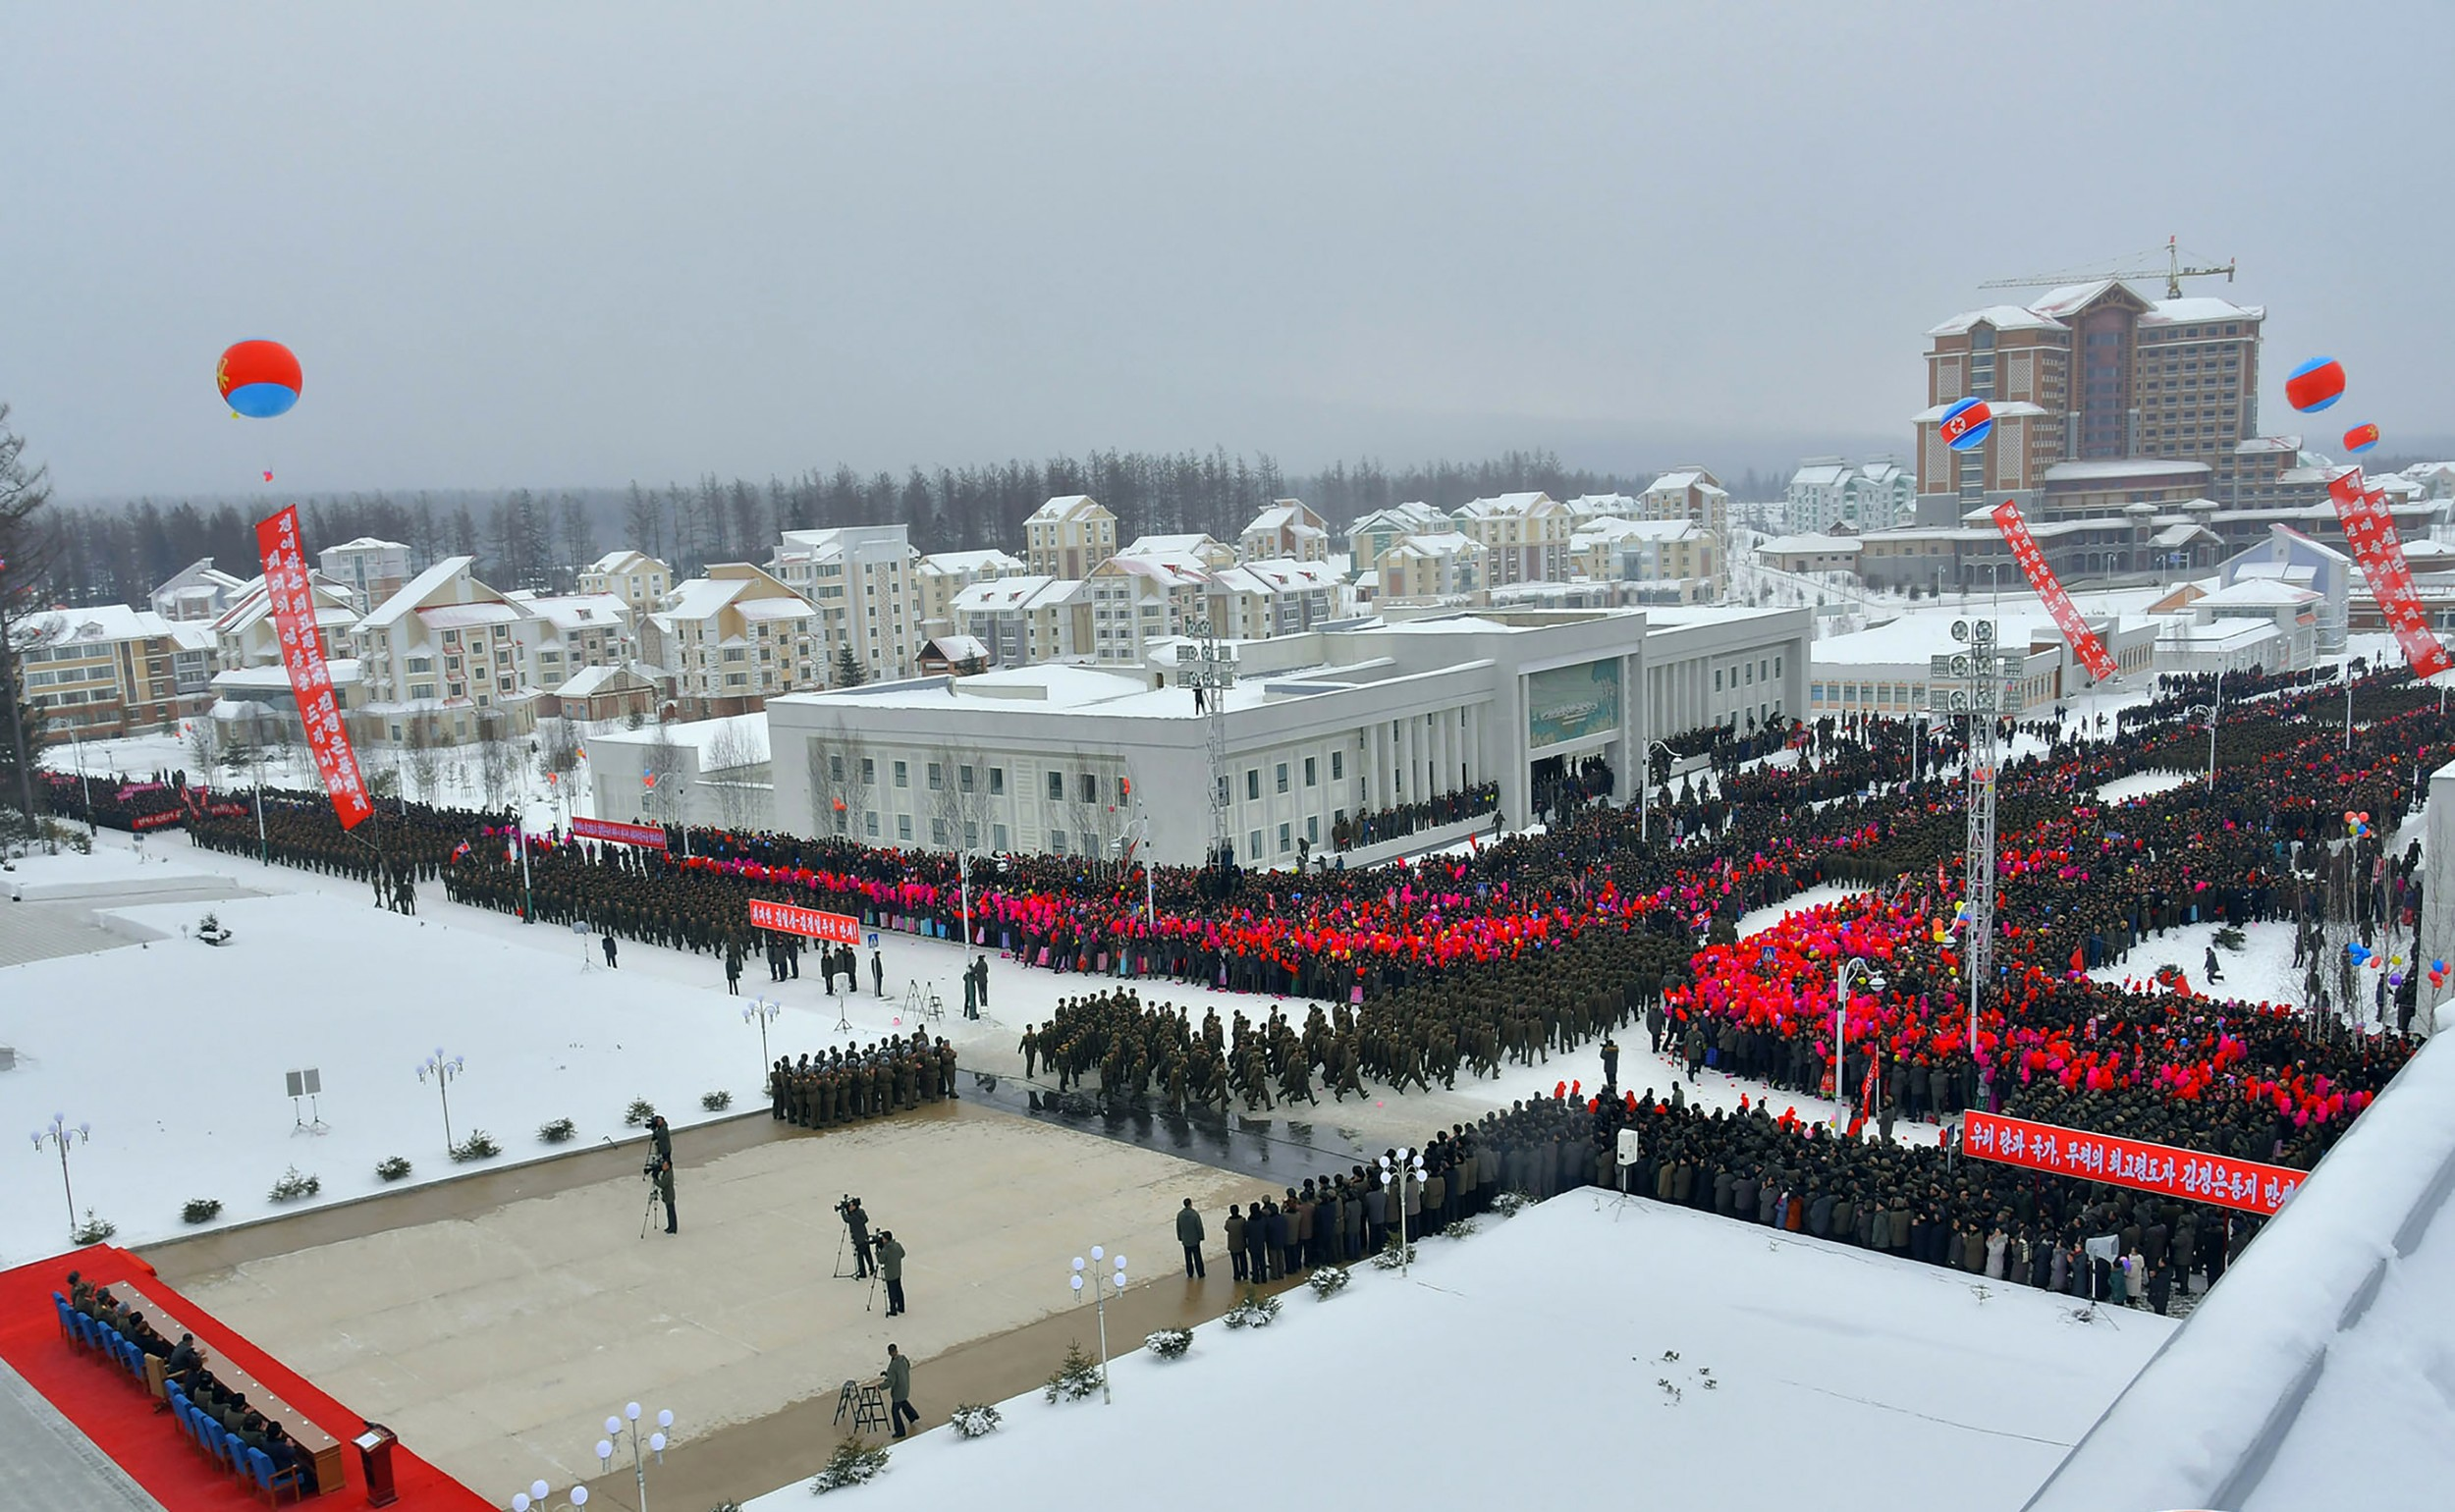 The ceremony to mark the completion of the construction of the township of Samjiyon County was a 'number one event' as Kim Jong Un was attending. Number one events typically involve much pomp and circumstance.